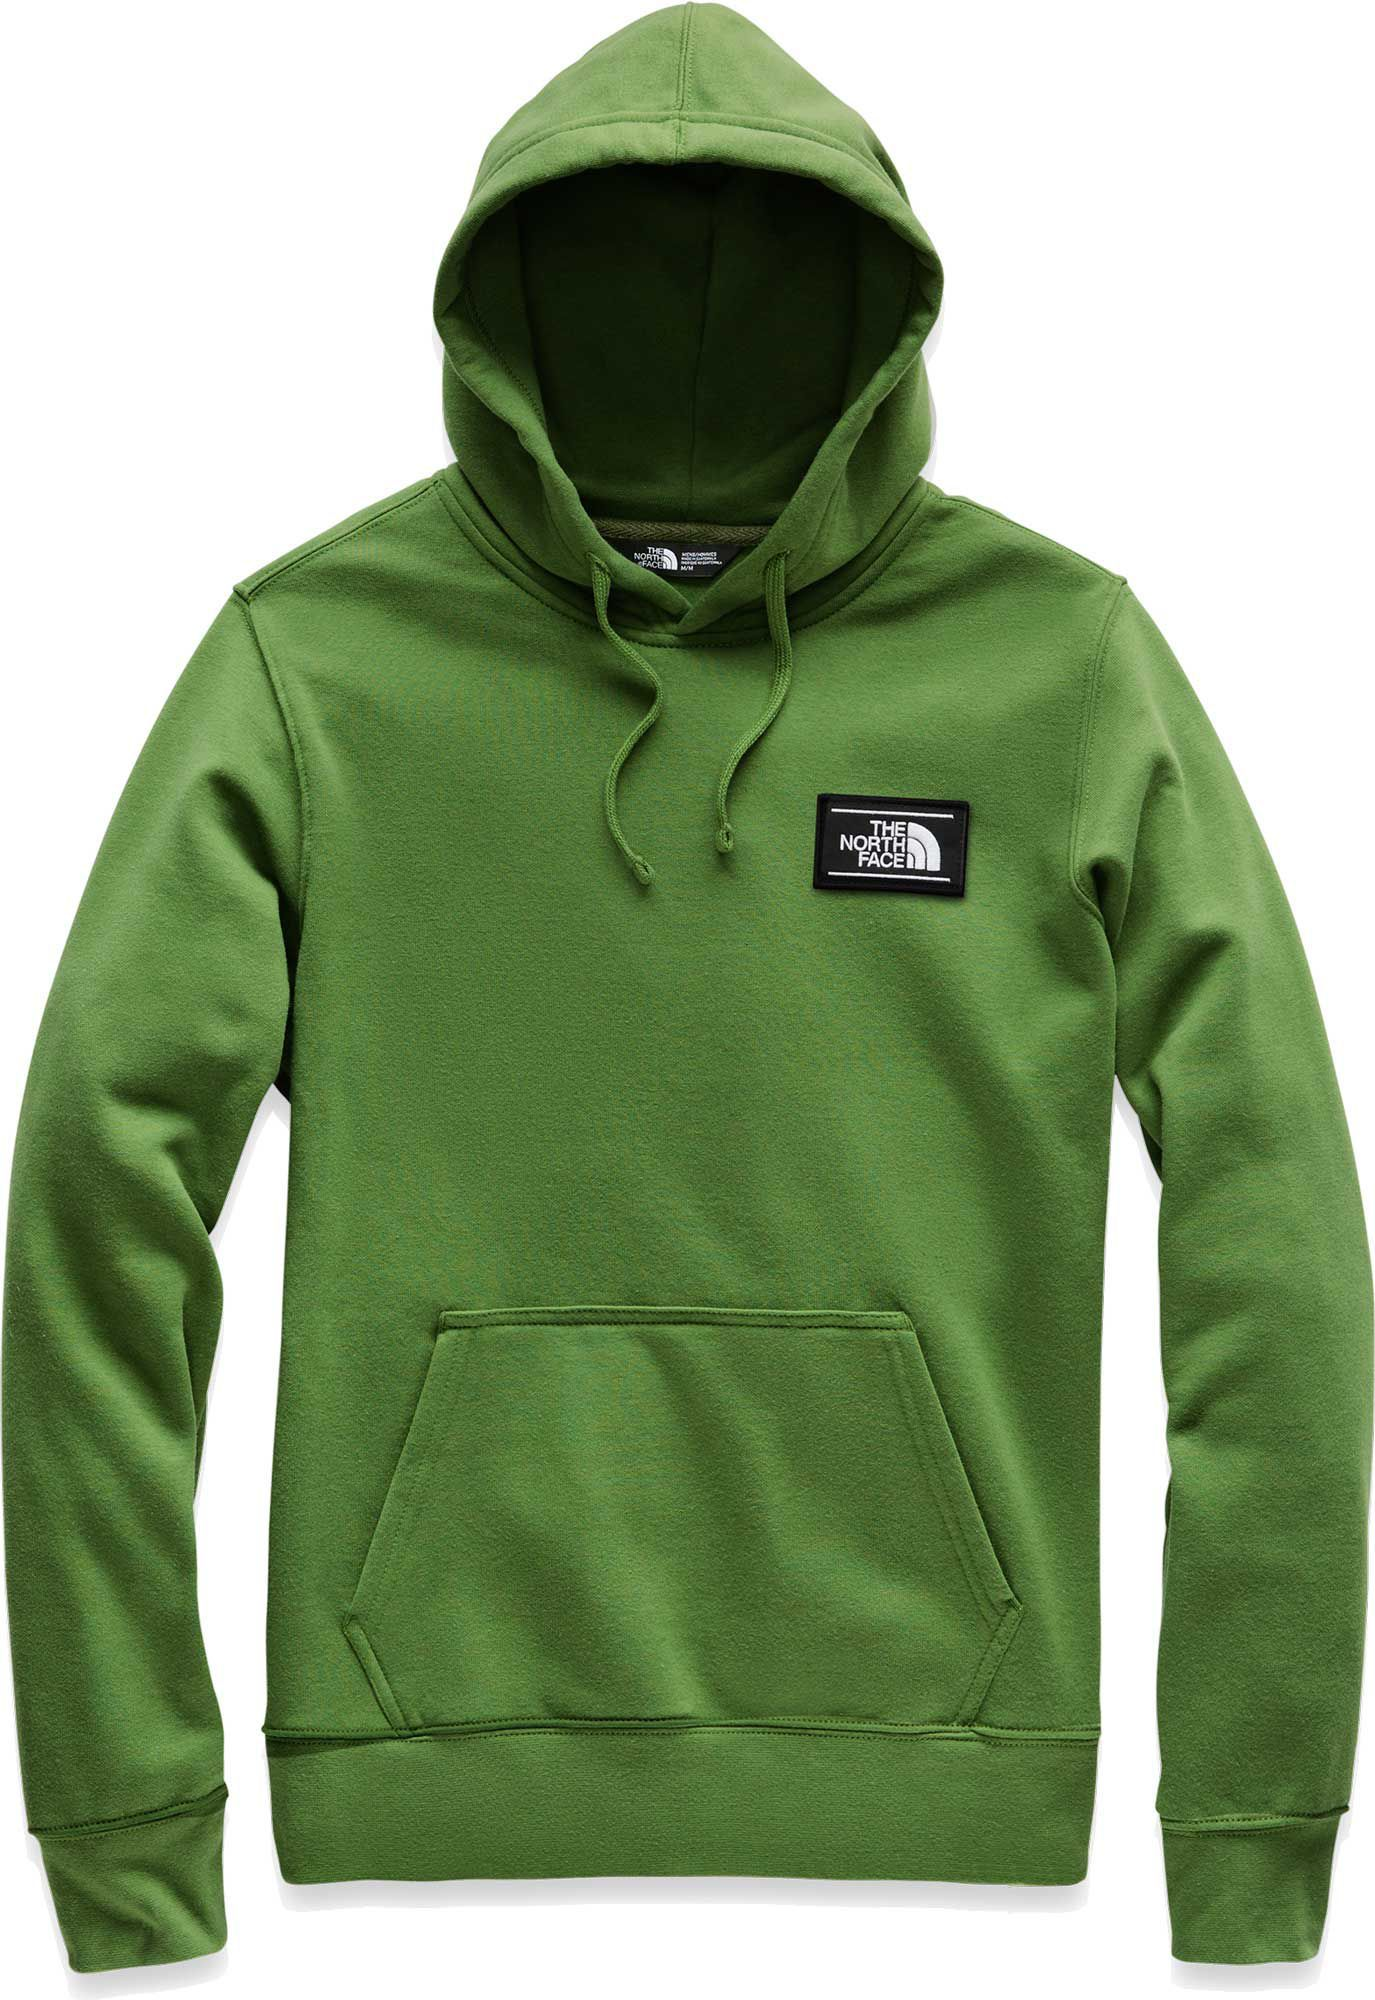 9b8fd4927 The North Face Men's Bottle Source Pullover Hoodie in 2019 ...